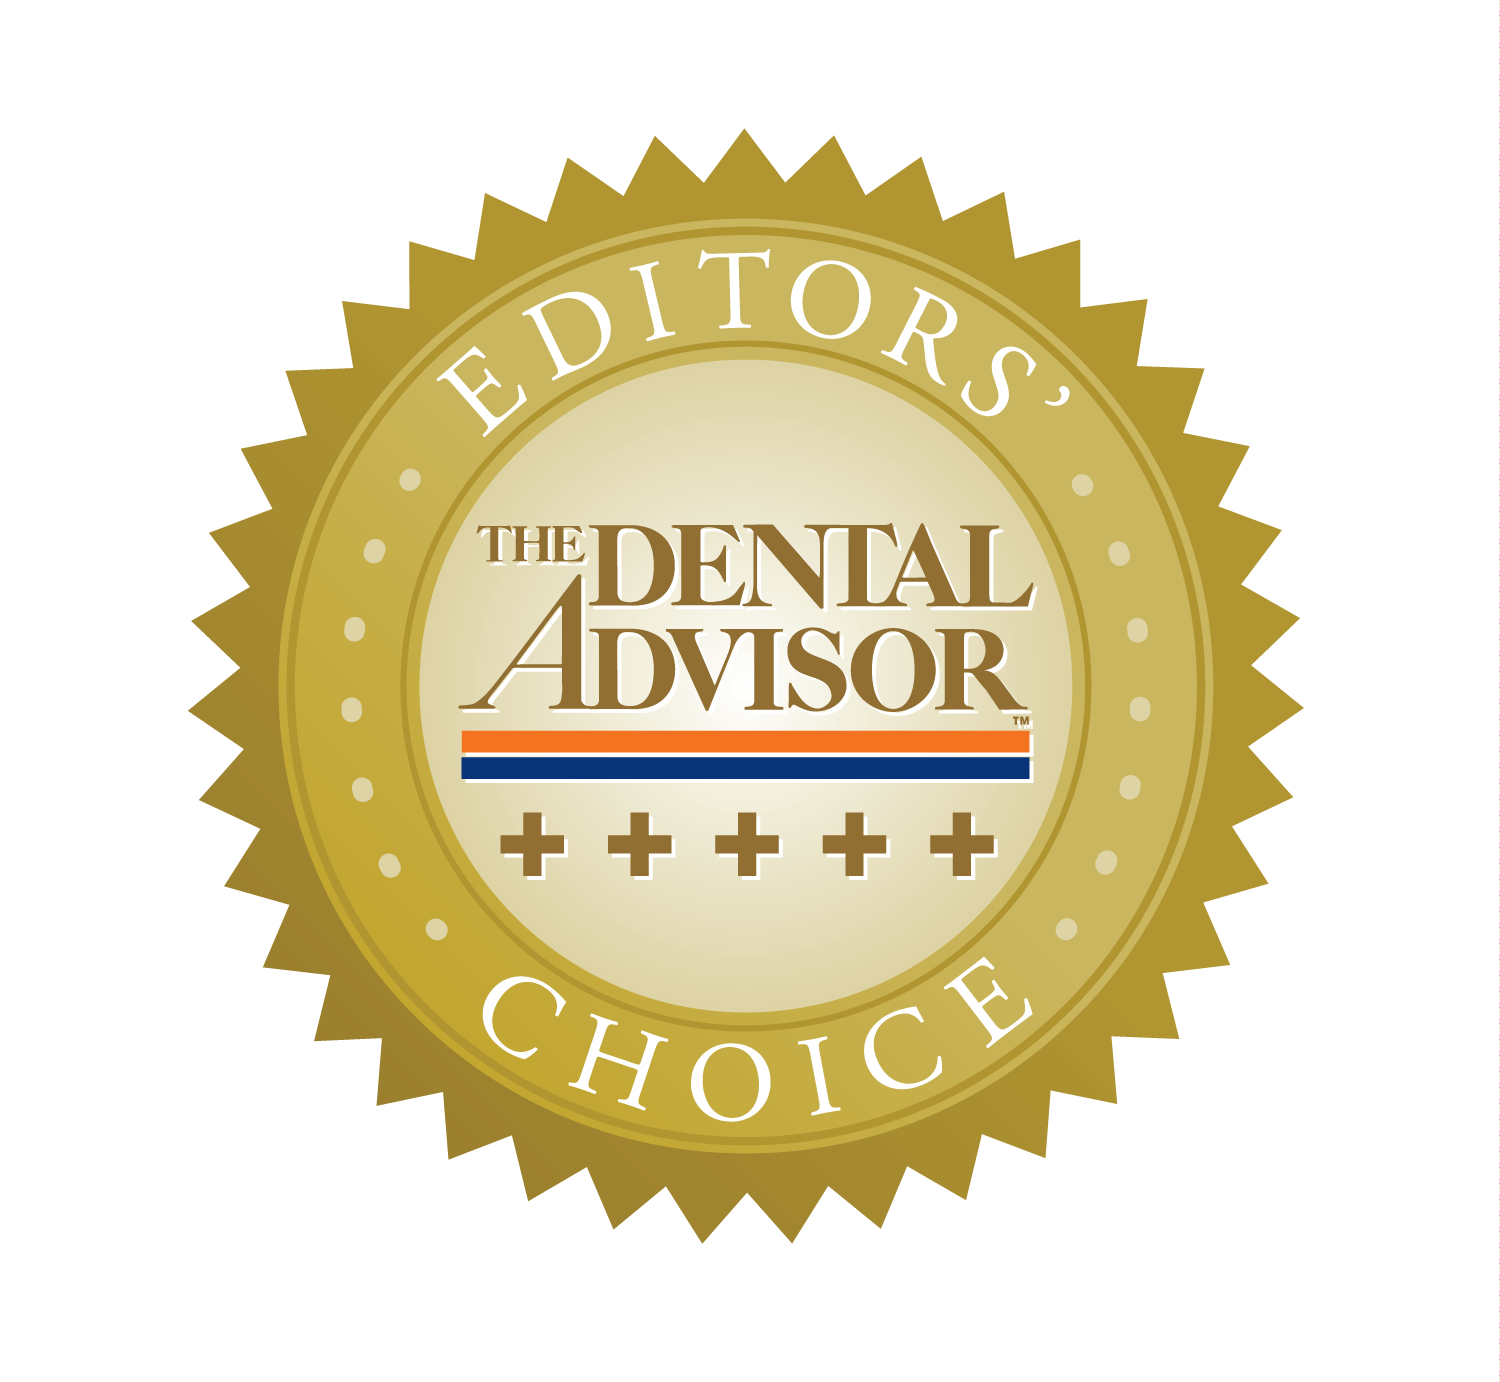 Dental Advisor Editors Choice 5 Plus Awards